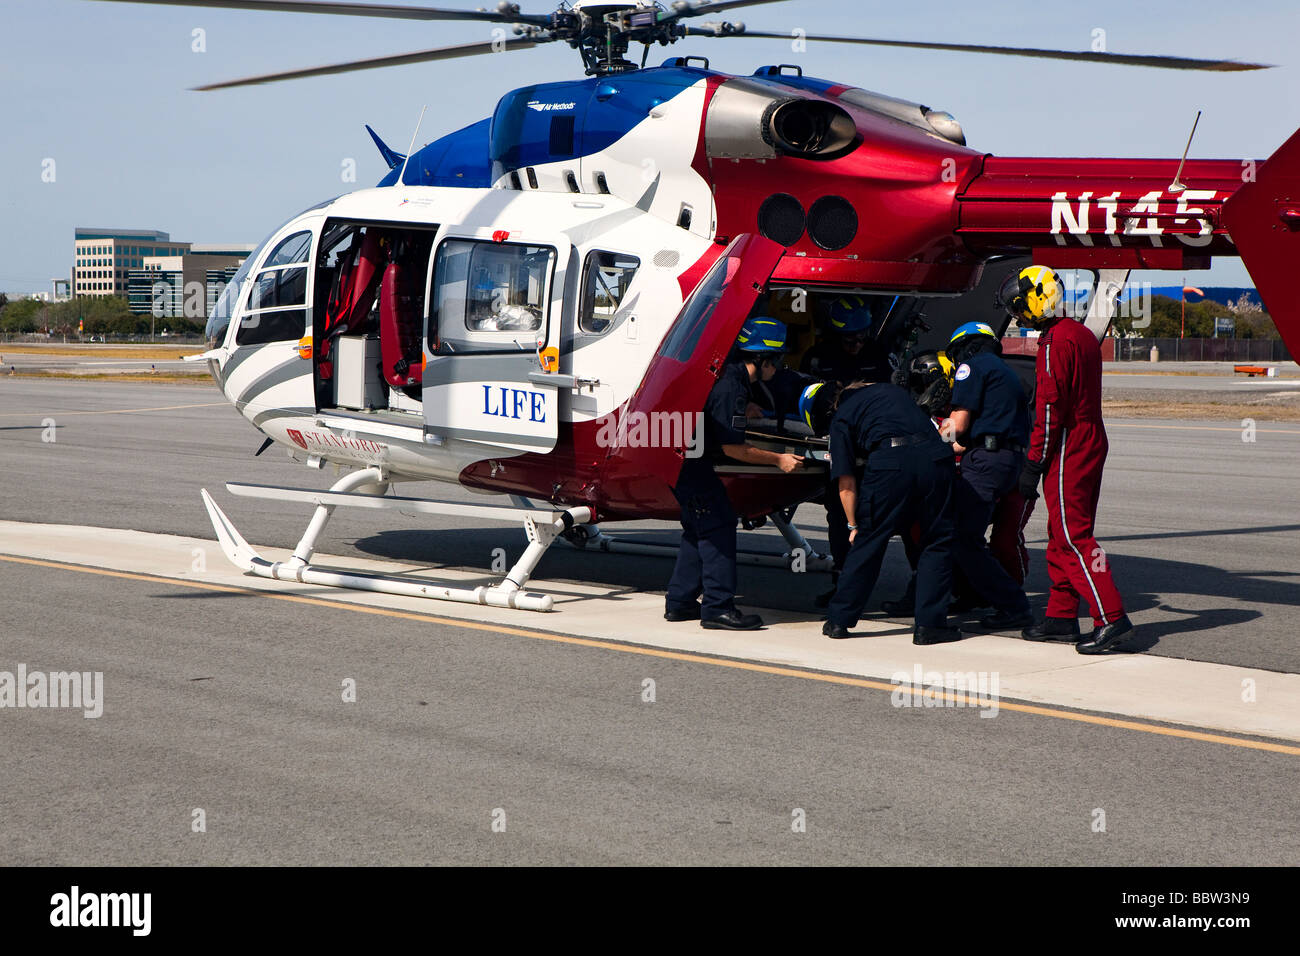 Air Ambulance Helicopter Emergency Responder Special Operations Training With Cal Fire California Highway Patrol Amr Emt